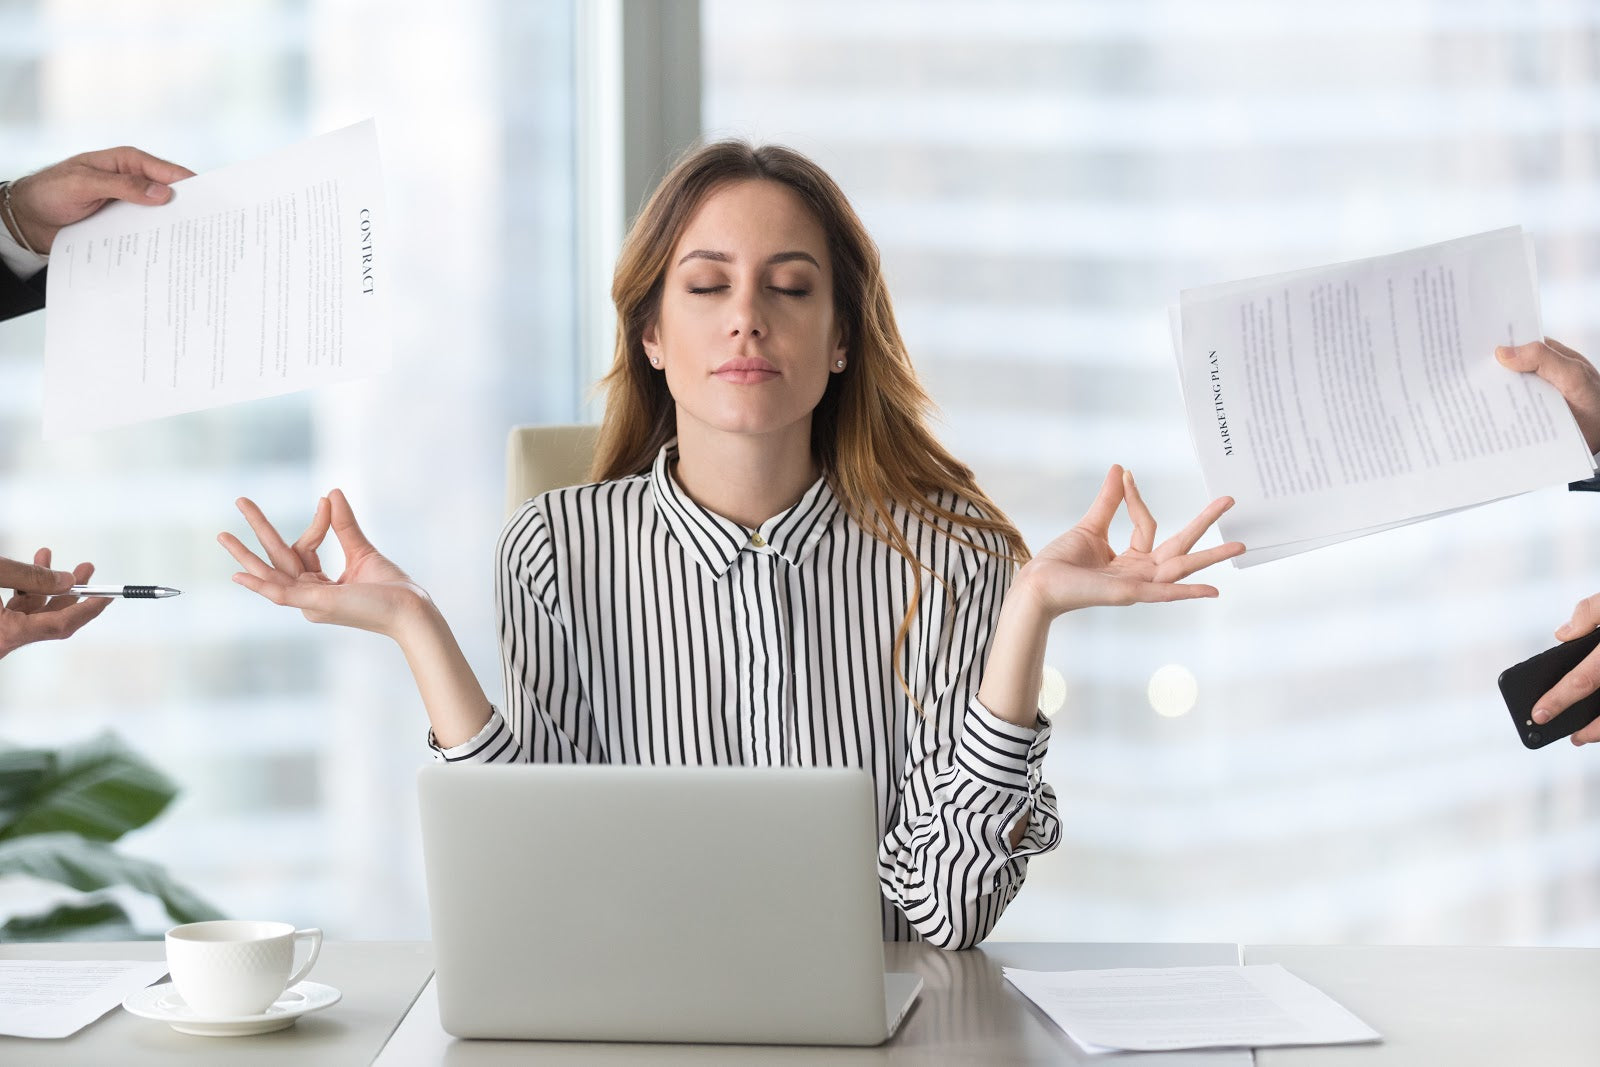 Woman meditating with eyes closed in front of laptop as people hold papers in front of her